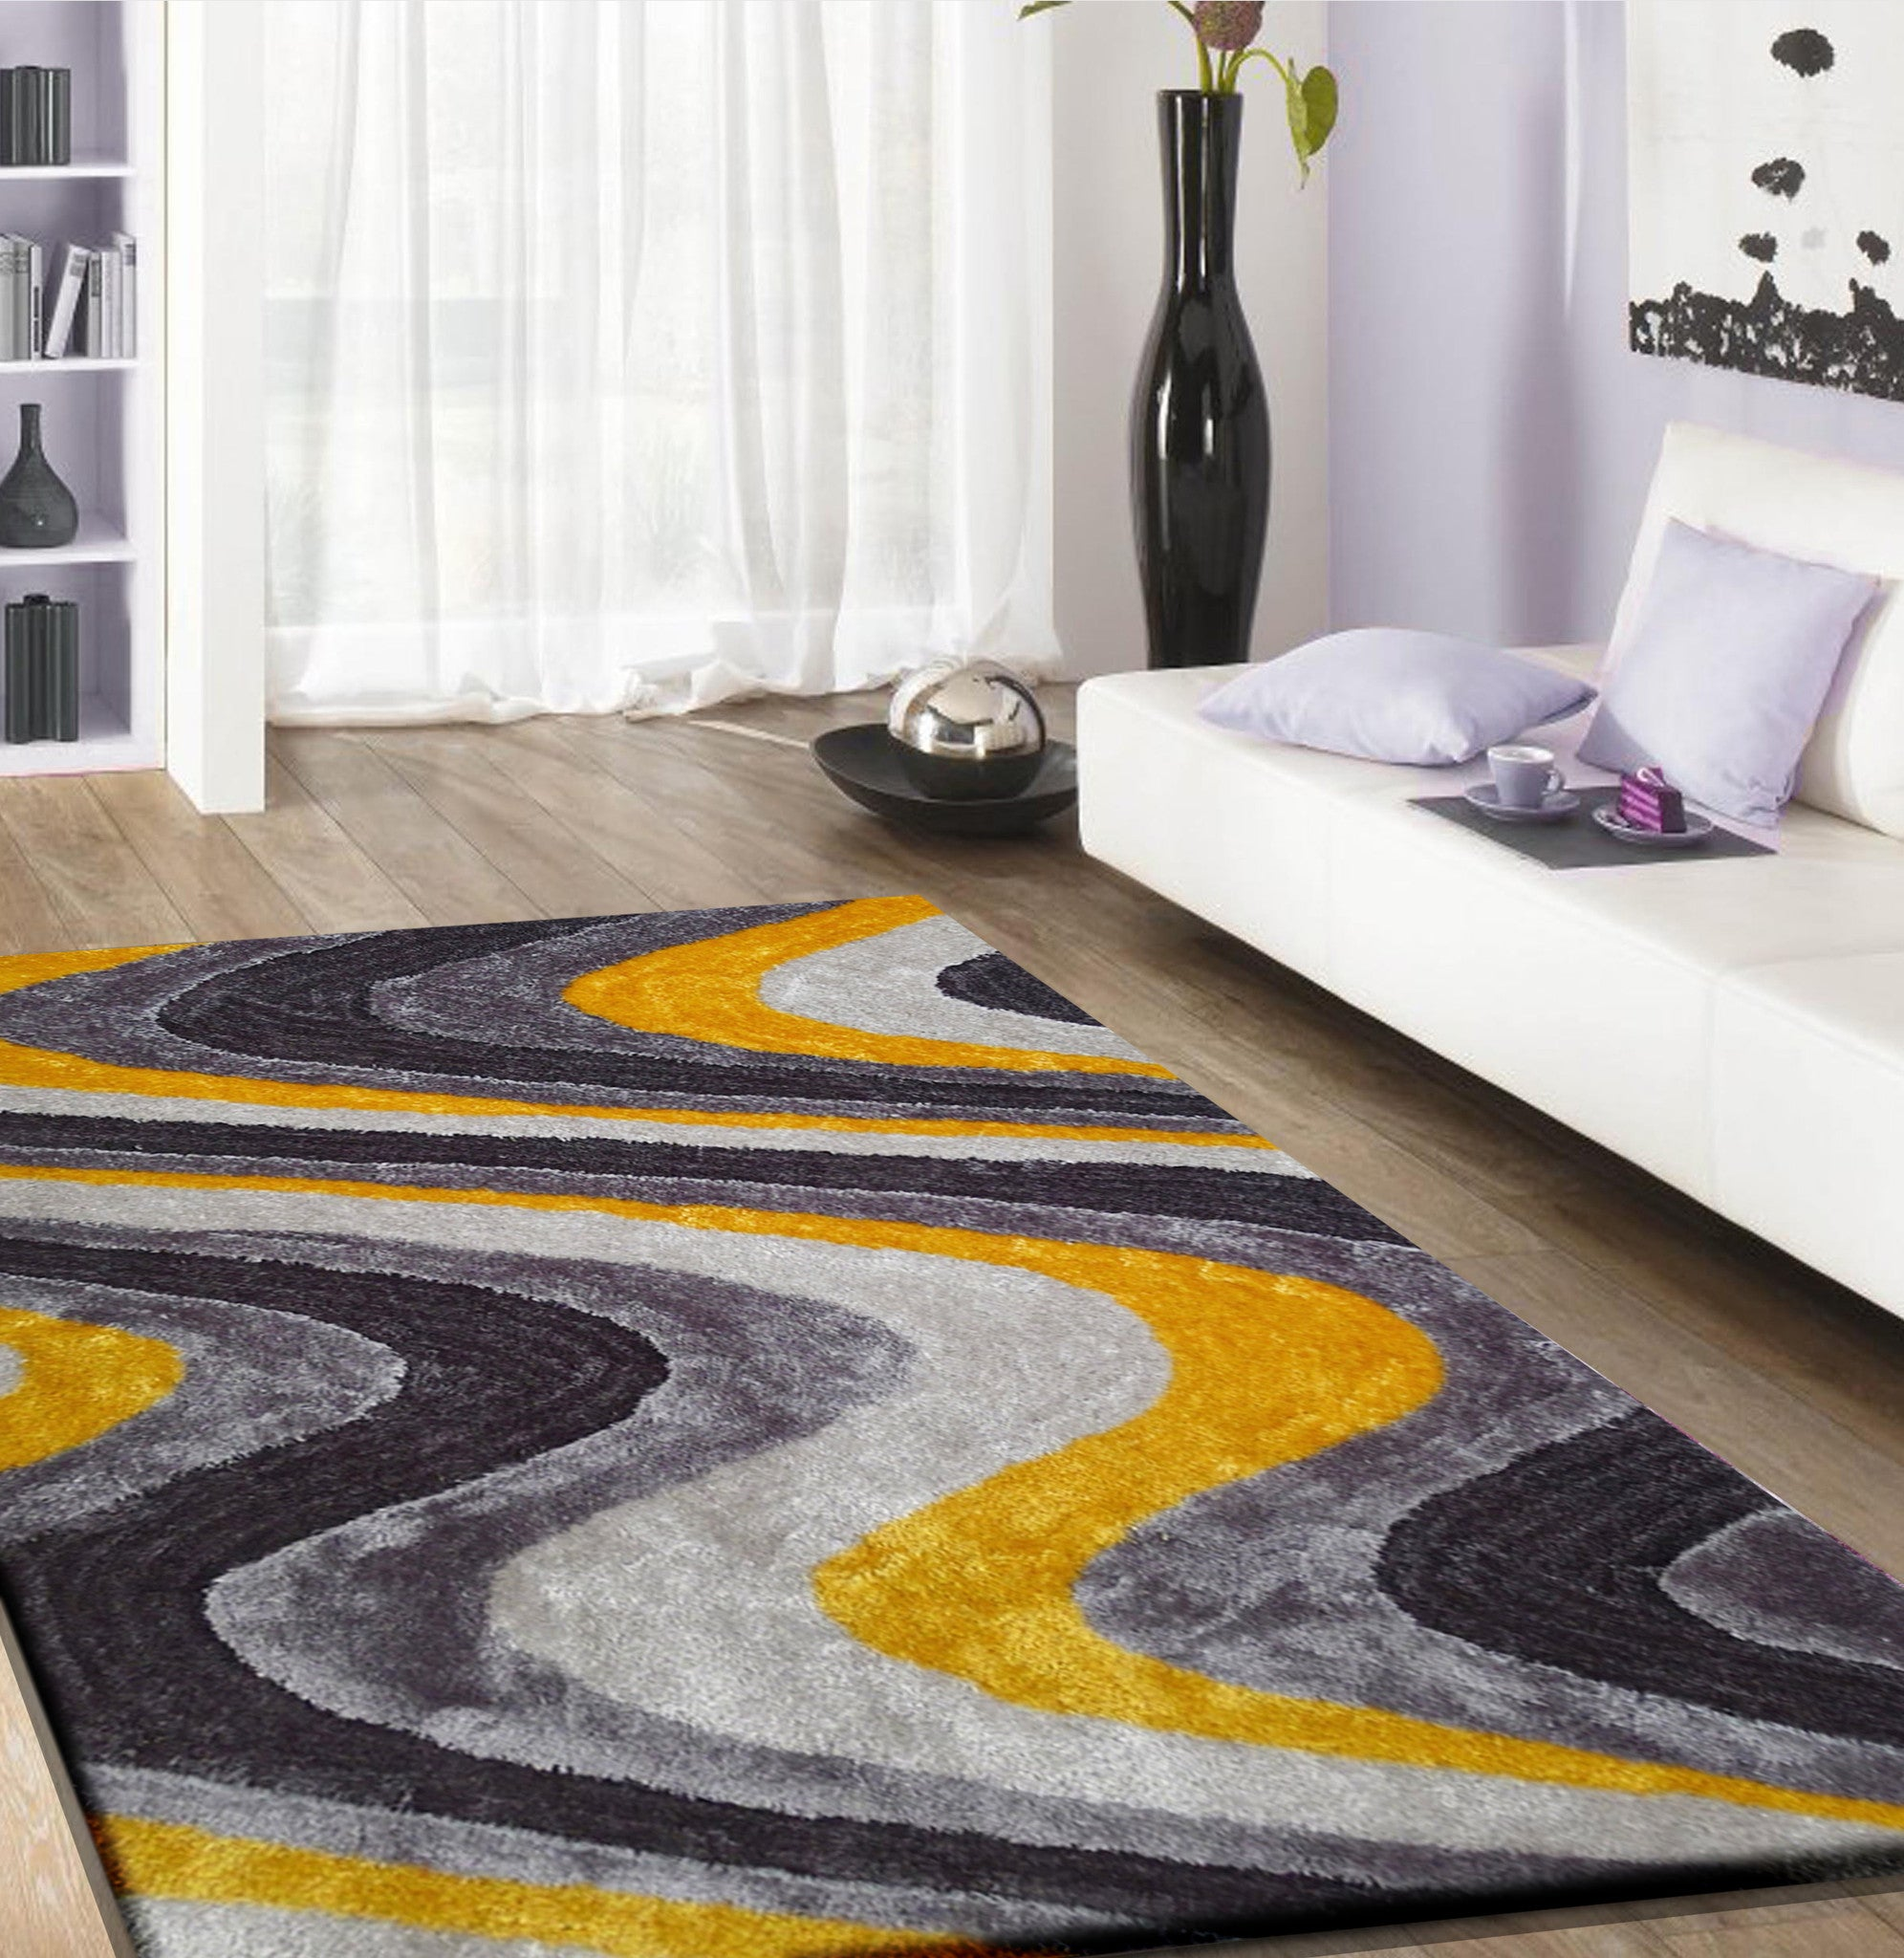 2piece set elegant shag rug with geometric design greyyellow rug pad